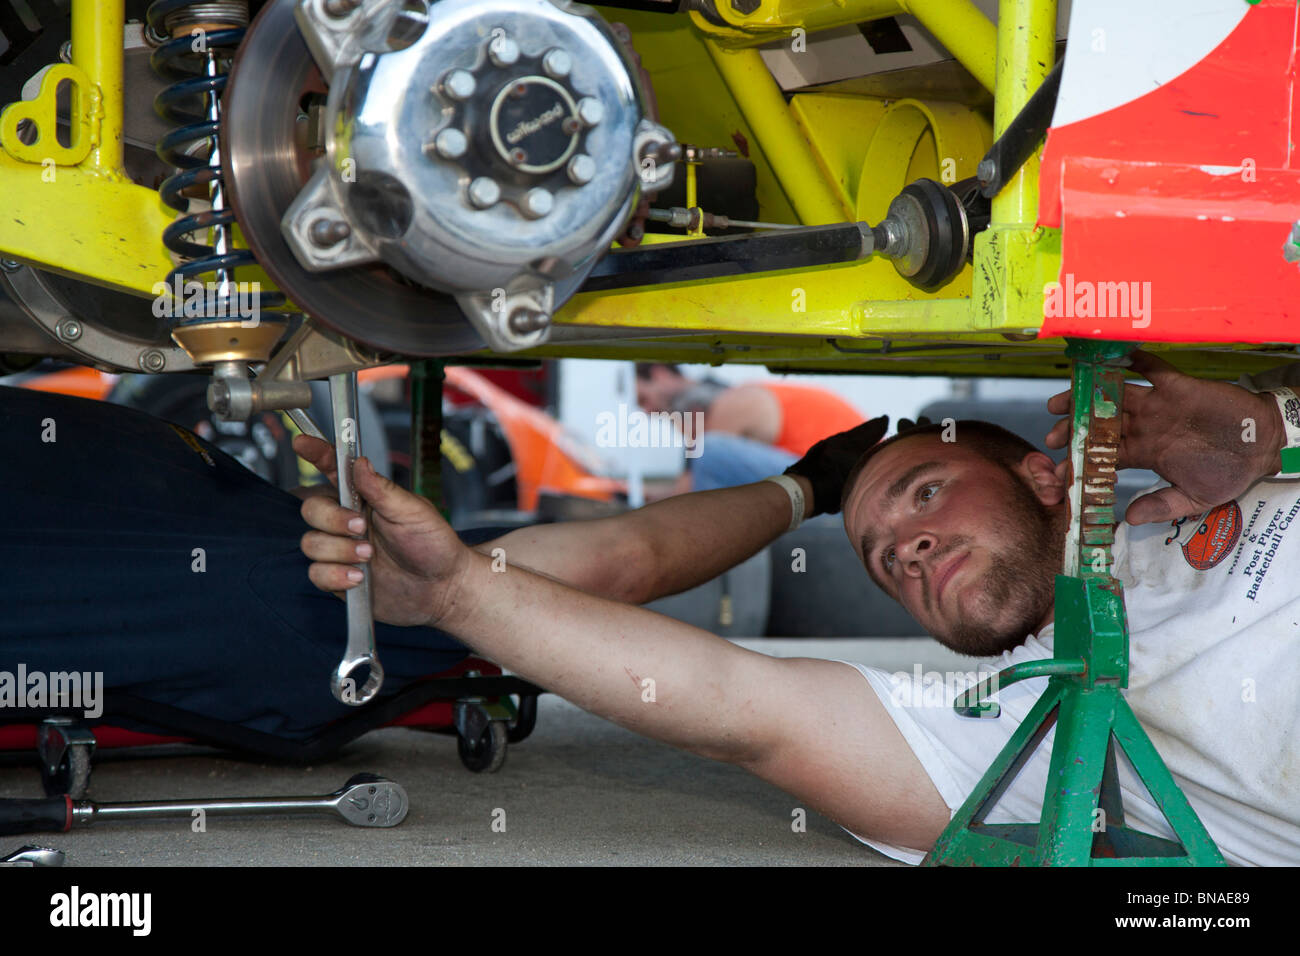 Woodstock, New Hampshire - A mechanic works on a car in the pits during stock car racing at White Mountain Motorsports - Stock Image